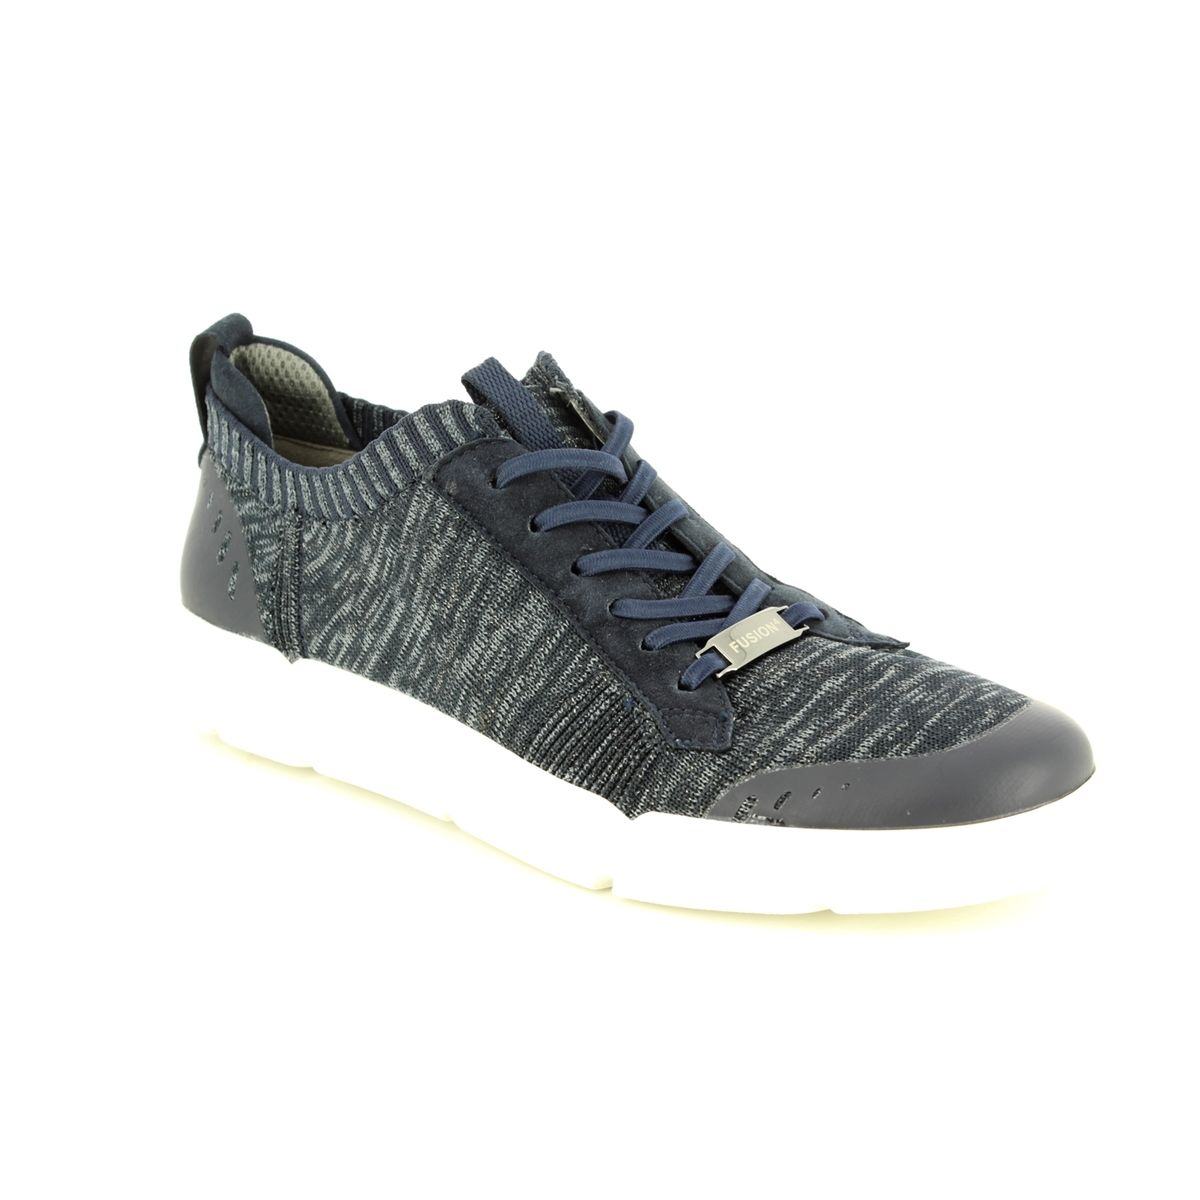 size 40 adee0 51d24 14412/06 Fusion4 High at Begg Shoes & Bags